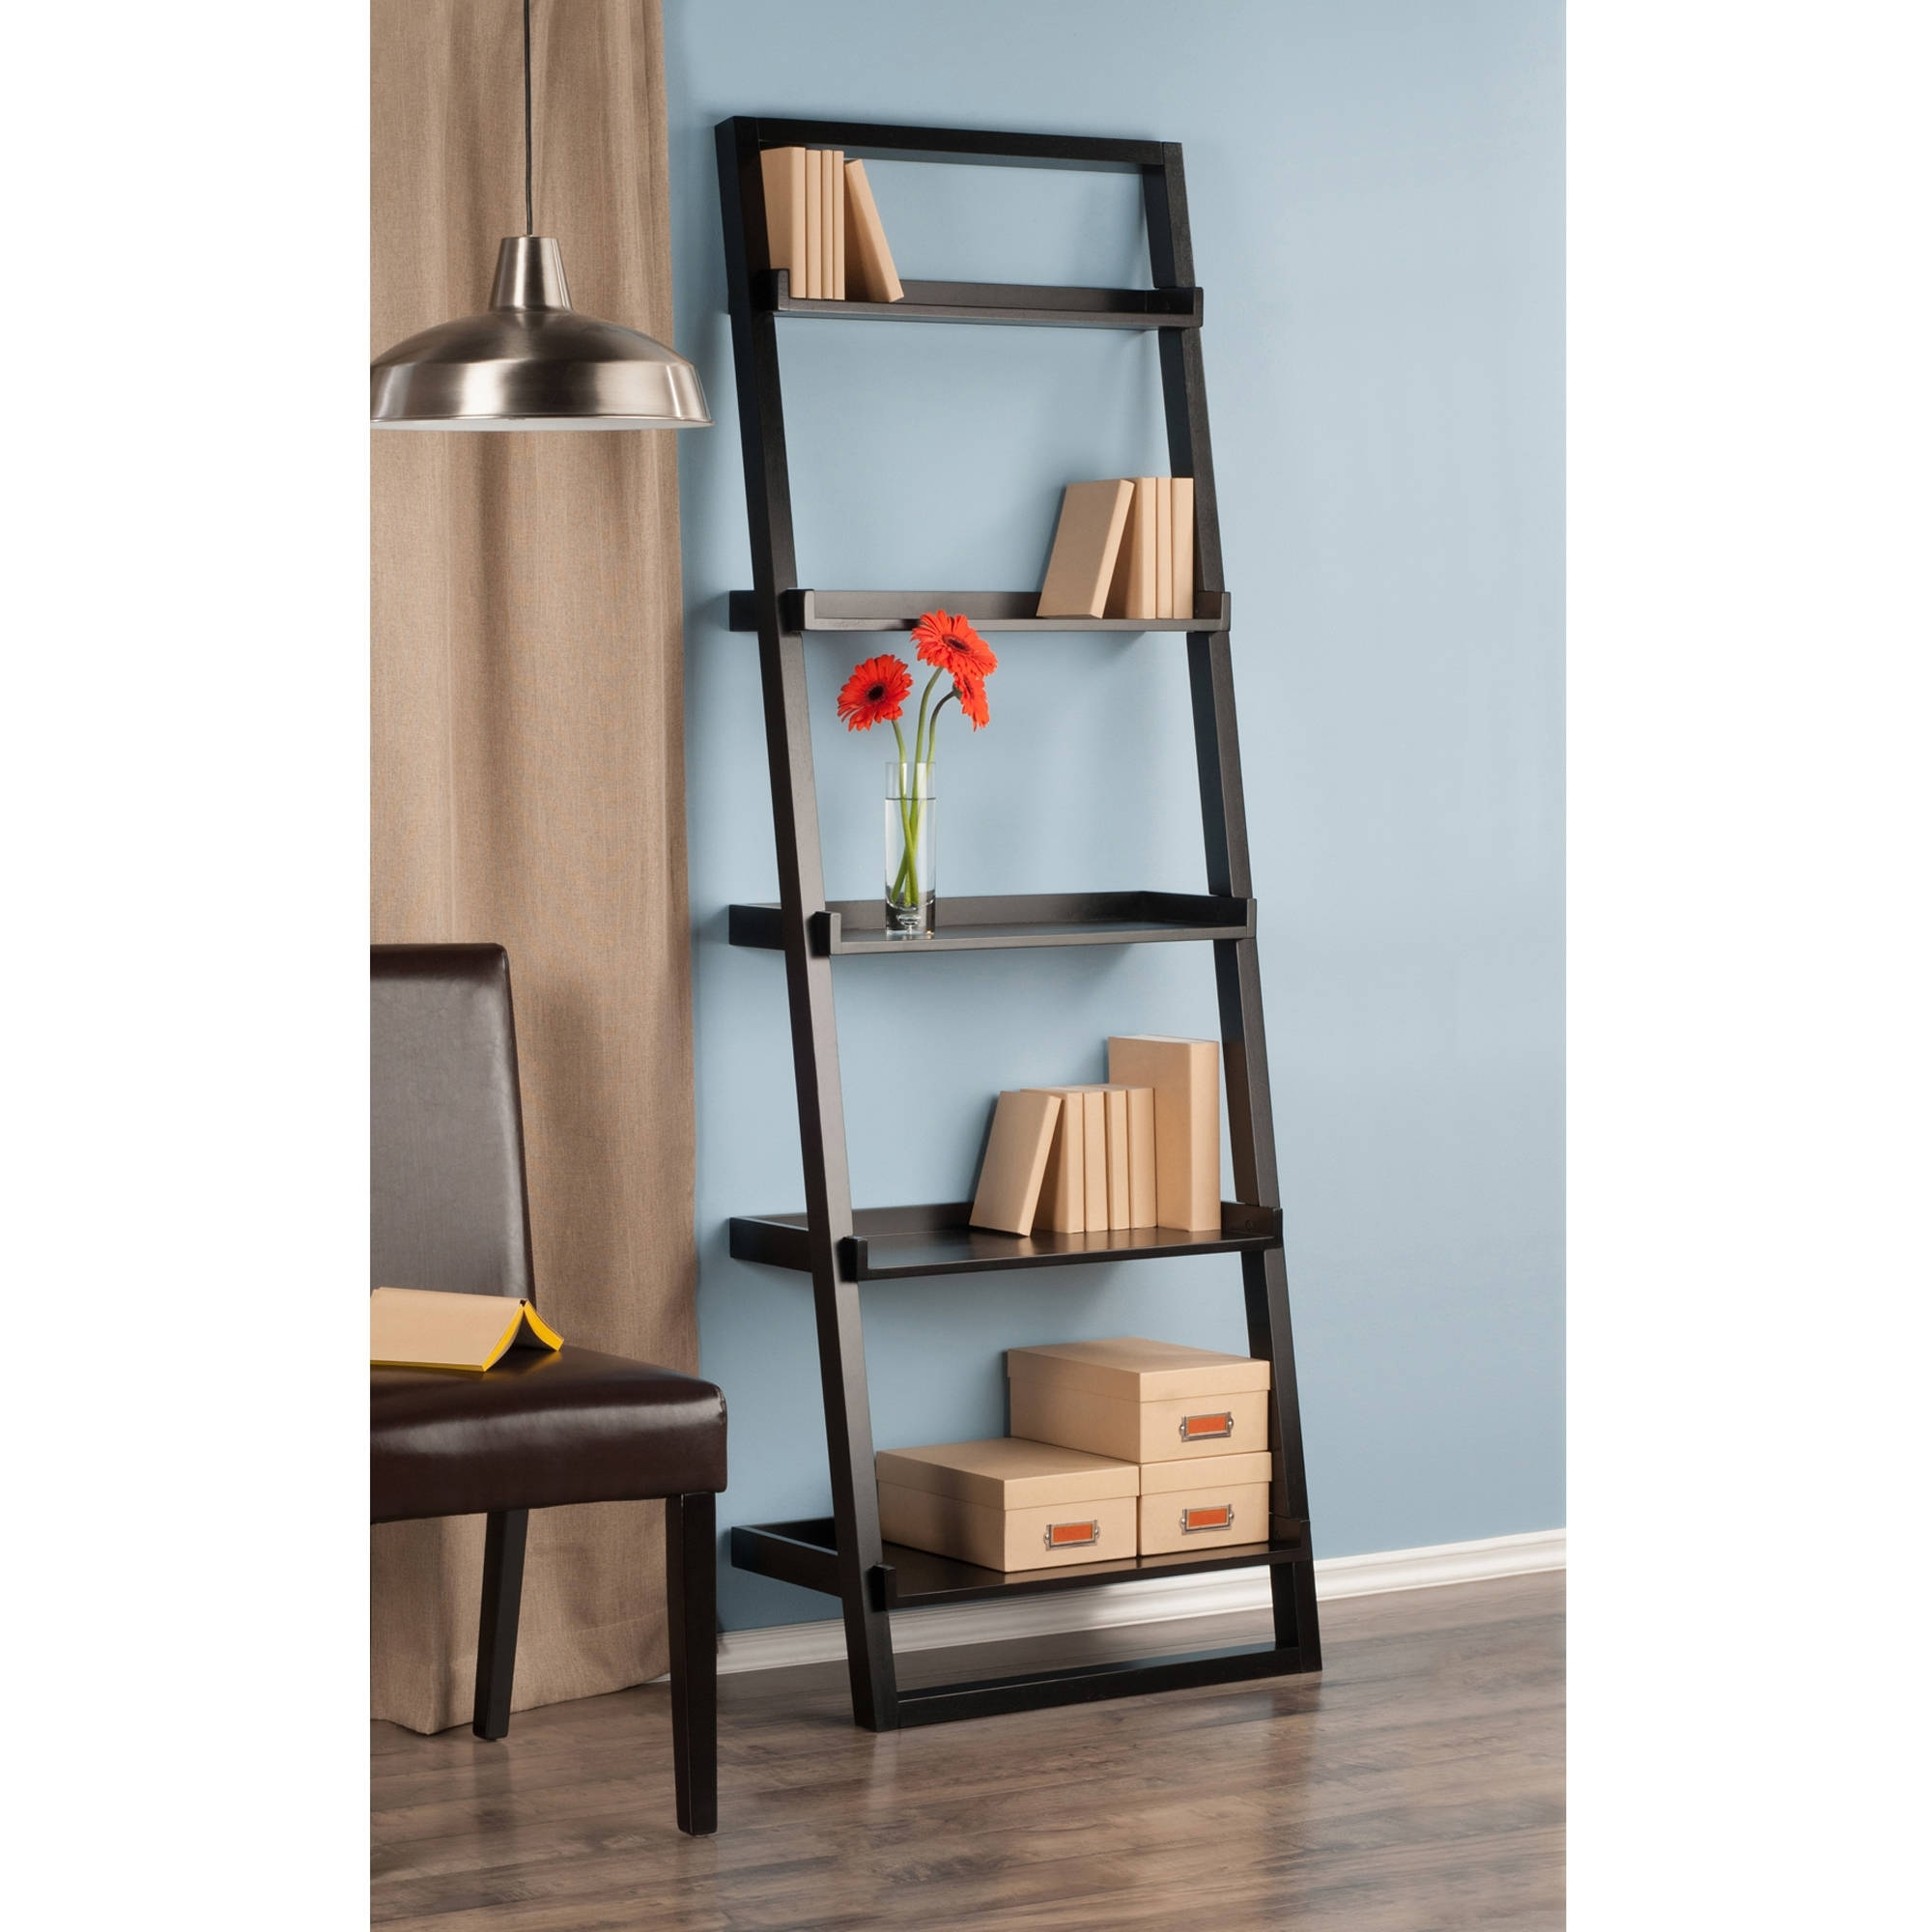 Well Liked Leaning Bookcases Intended For Leaning Wall 5 Shelf Bookcase, Black – Walmart (View 14 of 15)